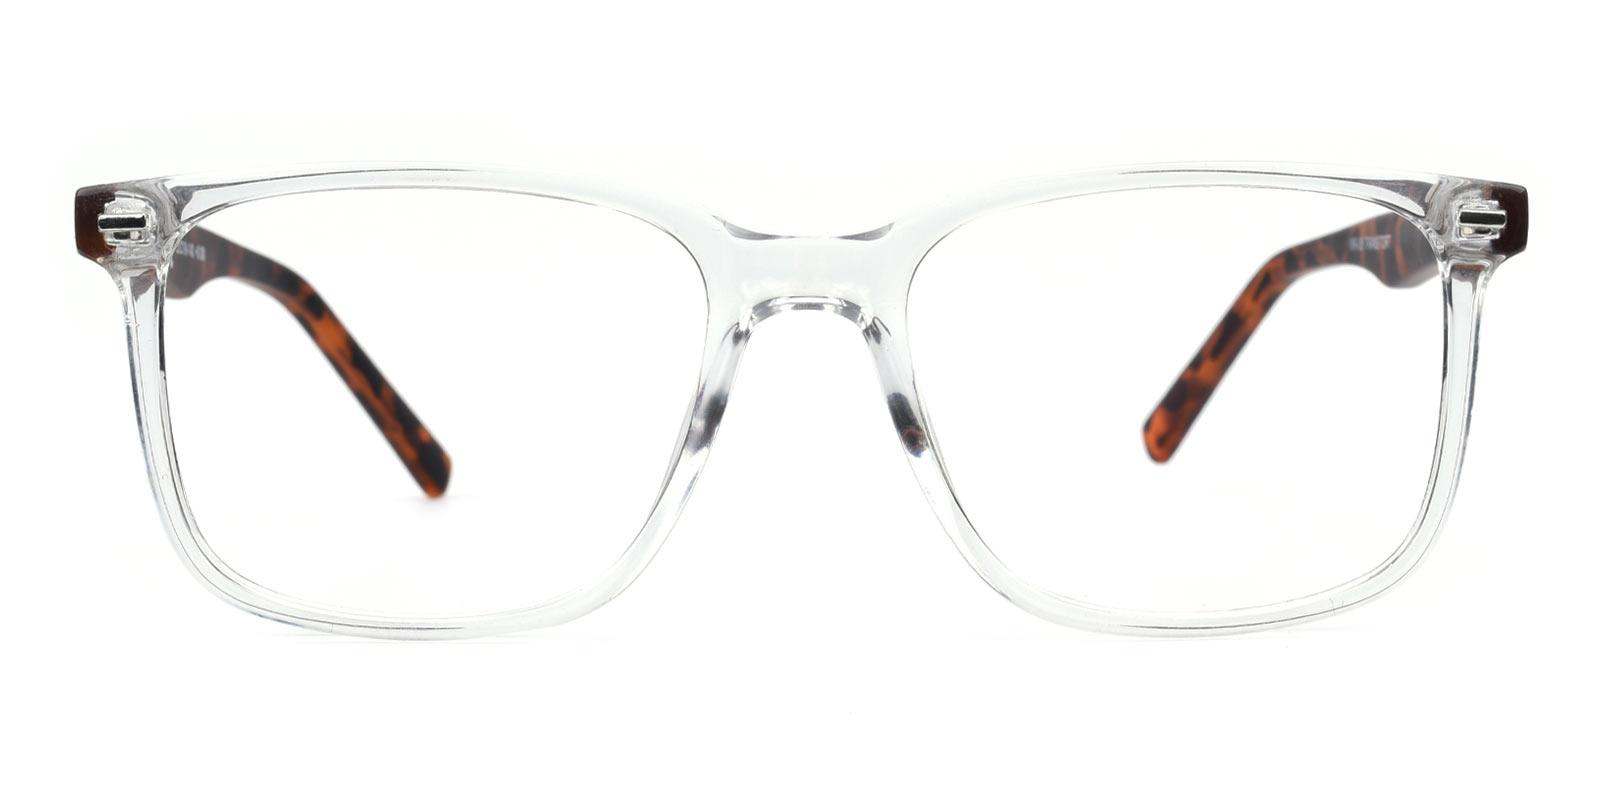 Dawn-Translucent-Rectangle-Combination-Eyeglasses-additional2